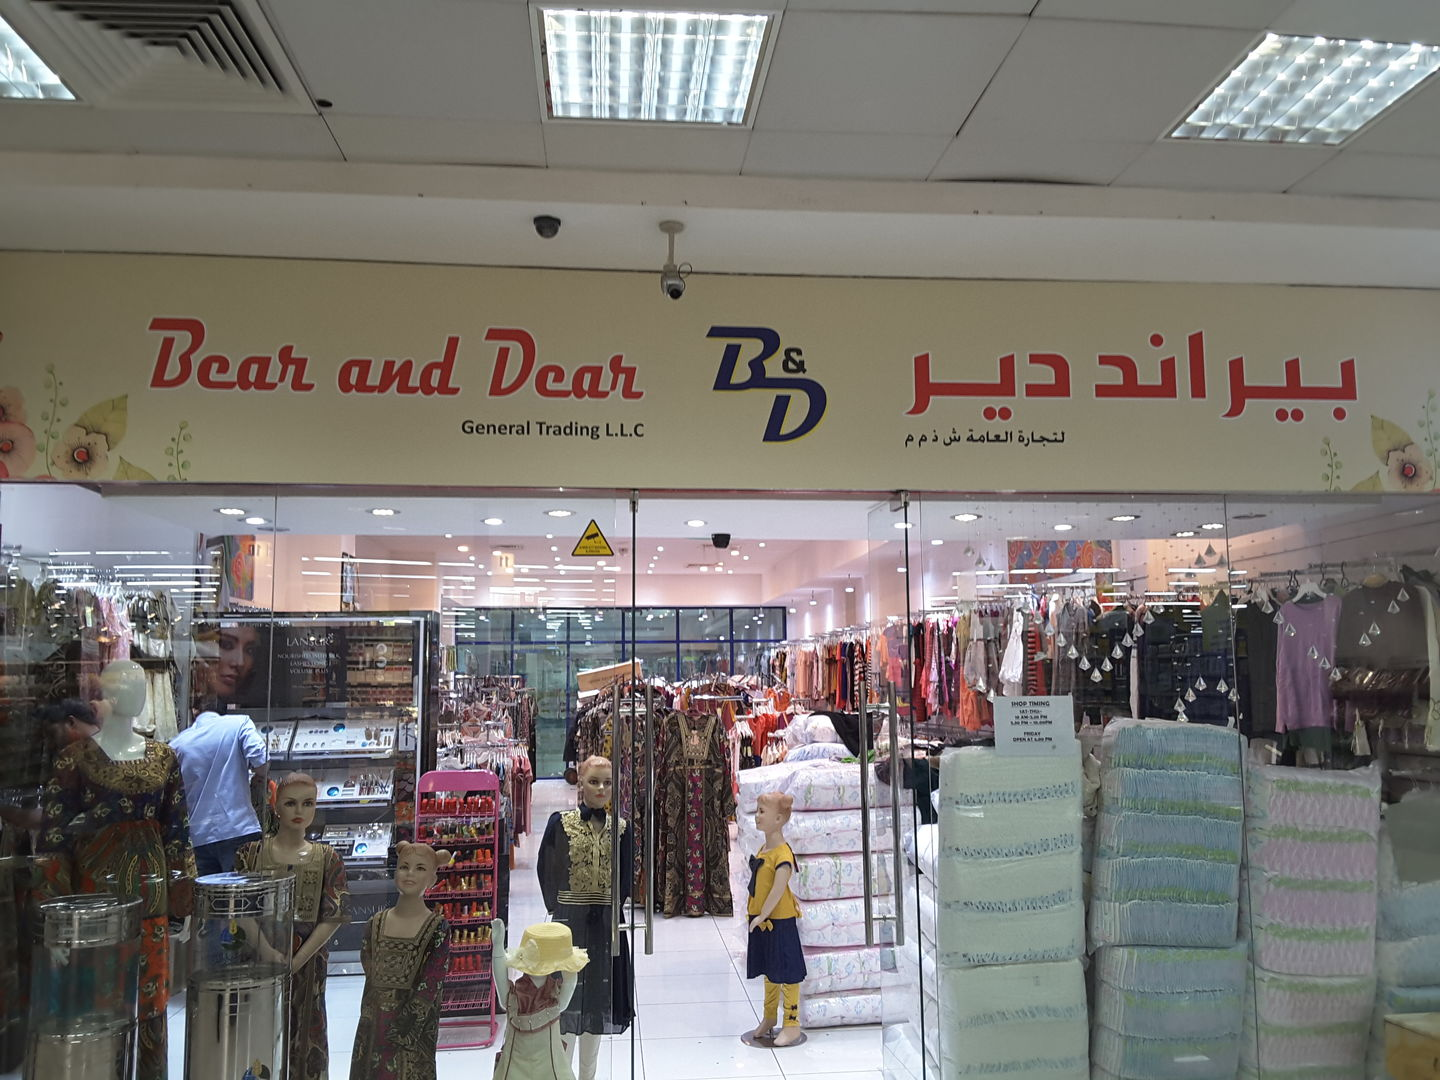 HiDubai-business-bear-and-dear-general-trading-shopping-apparel-al-wuheida-dubai-2